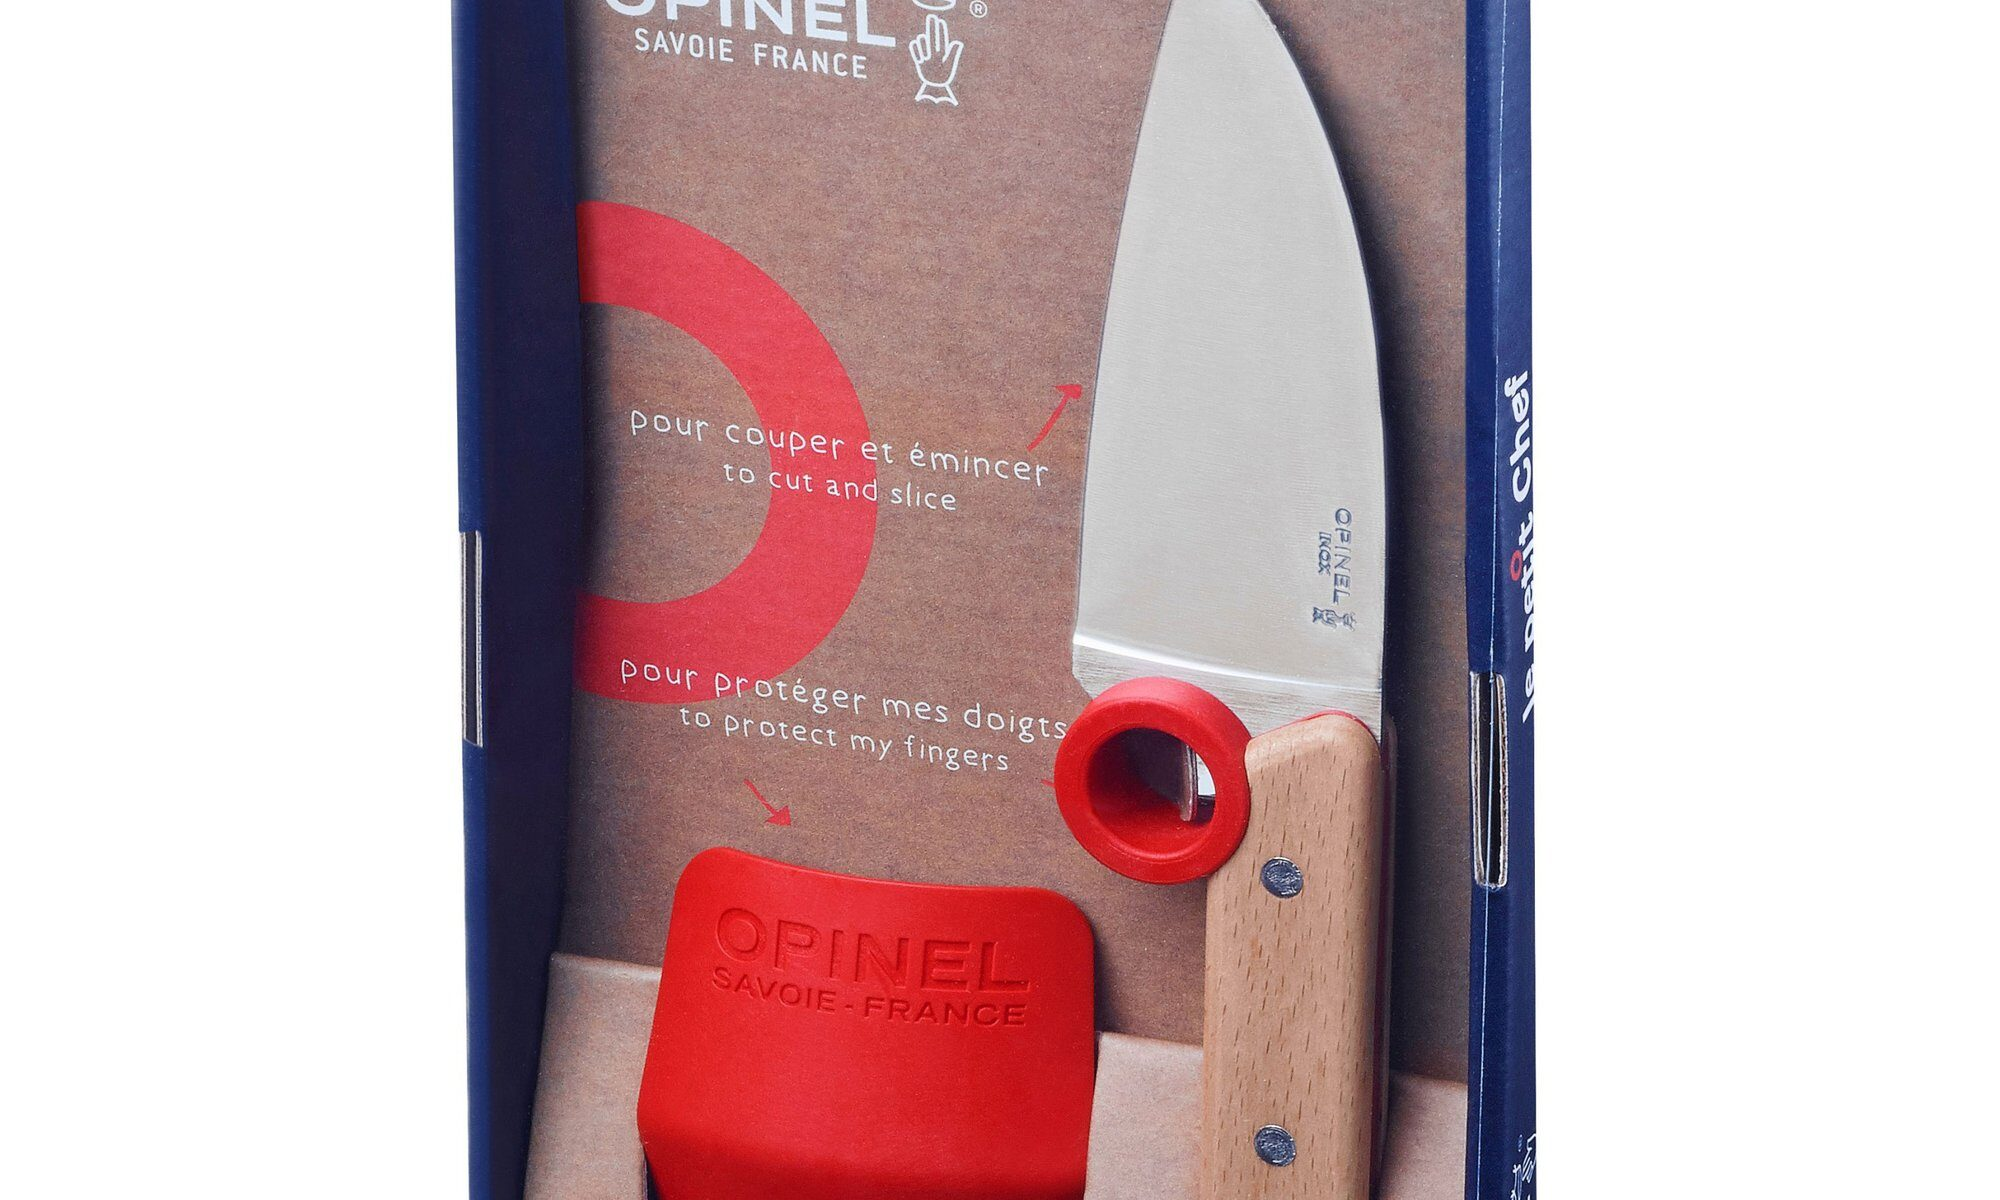 Image of the package of Opinel Le Petit Chef Knife Set